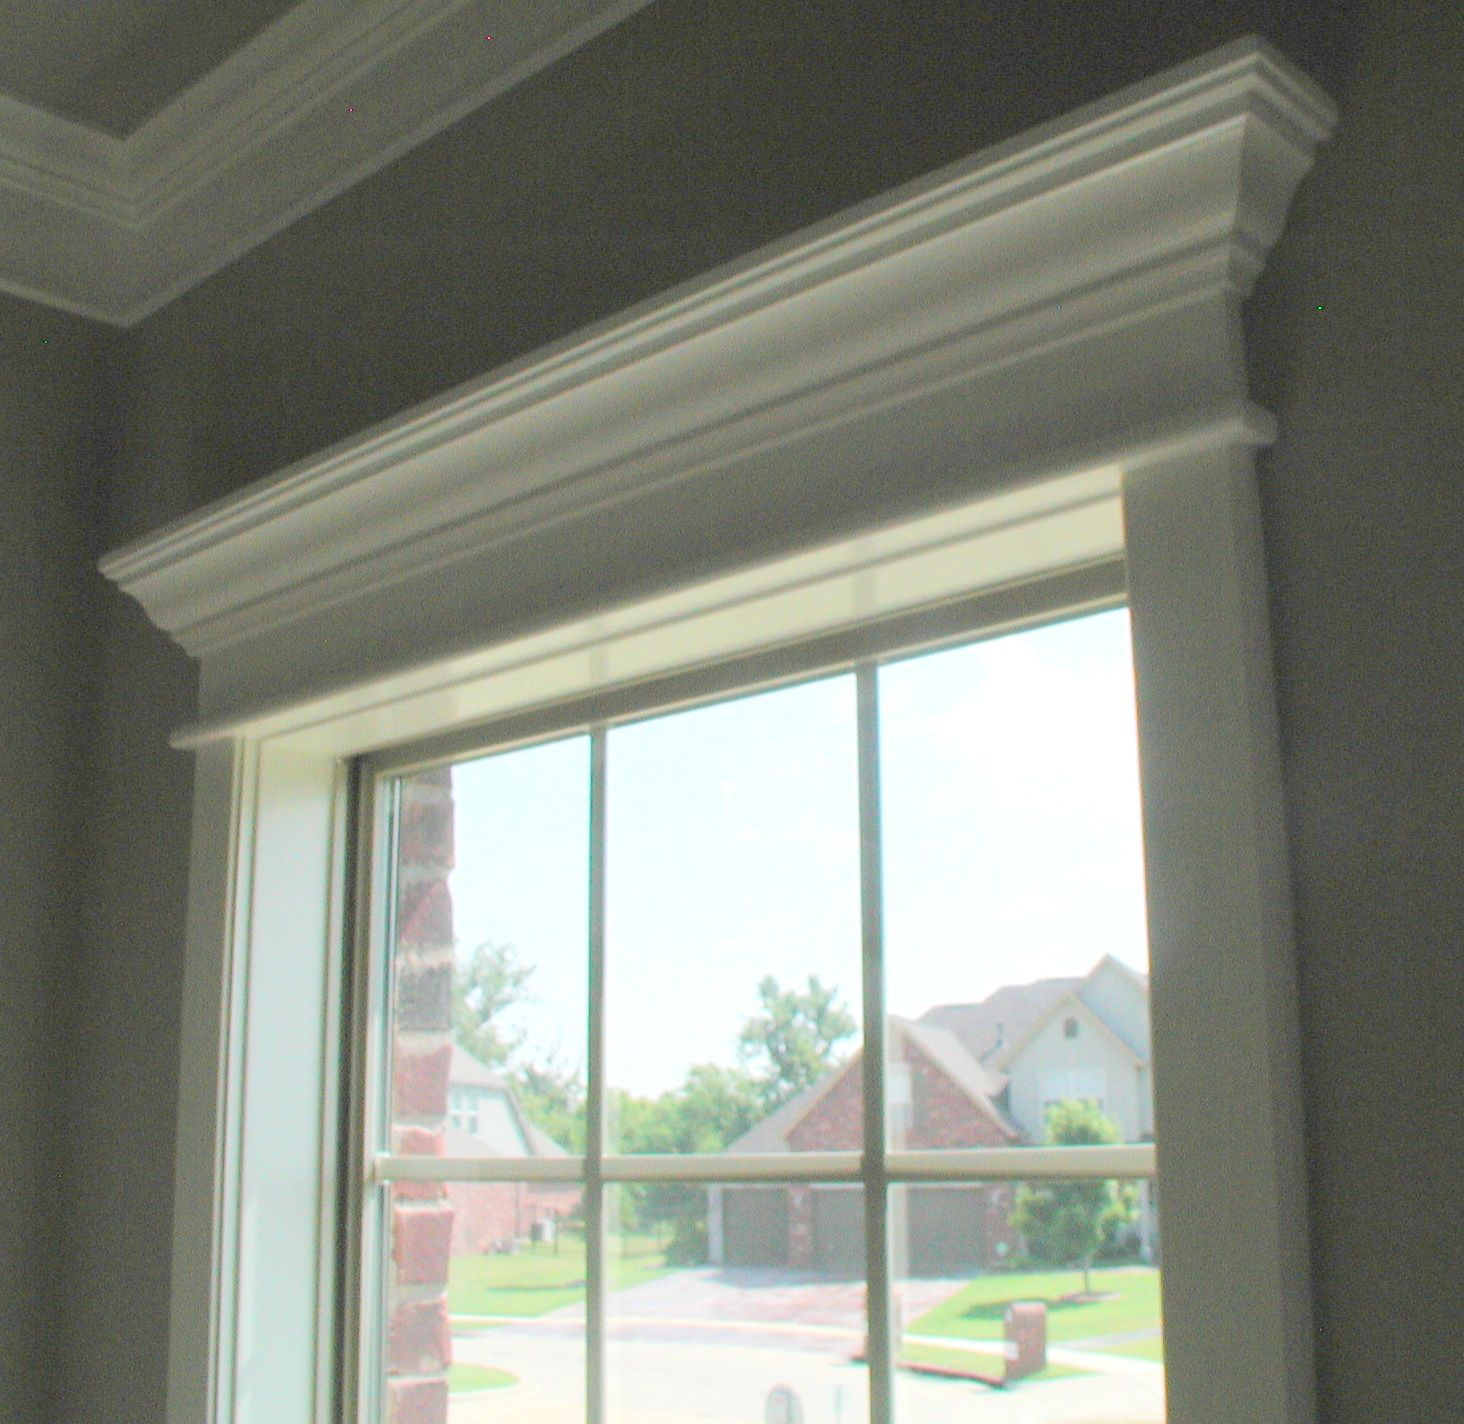 Doorway And Window Molding Pinterest Window Room And Window Moldings